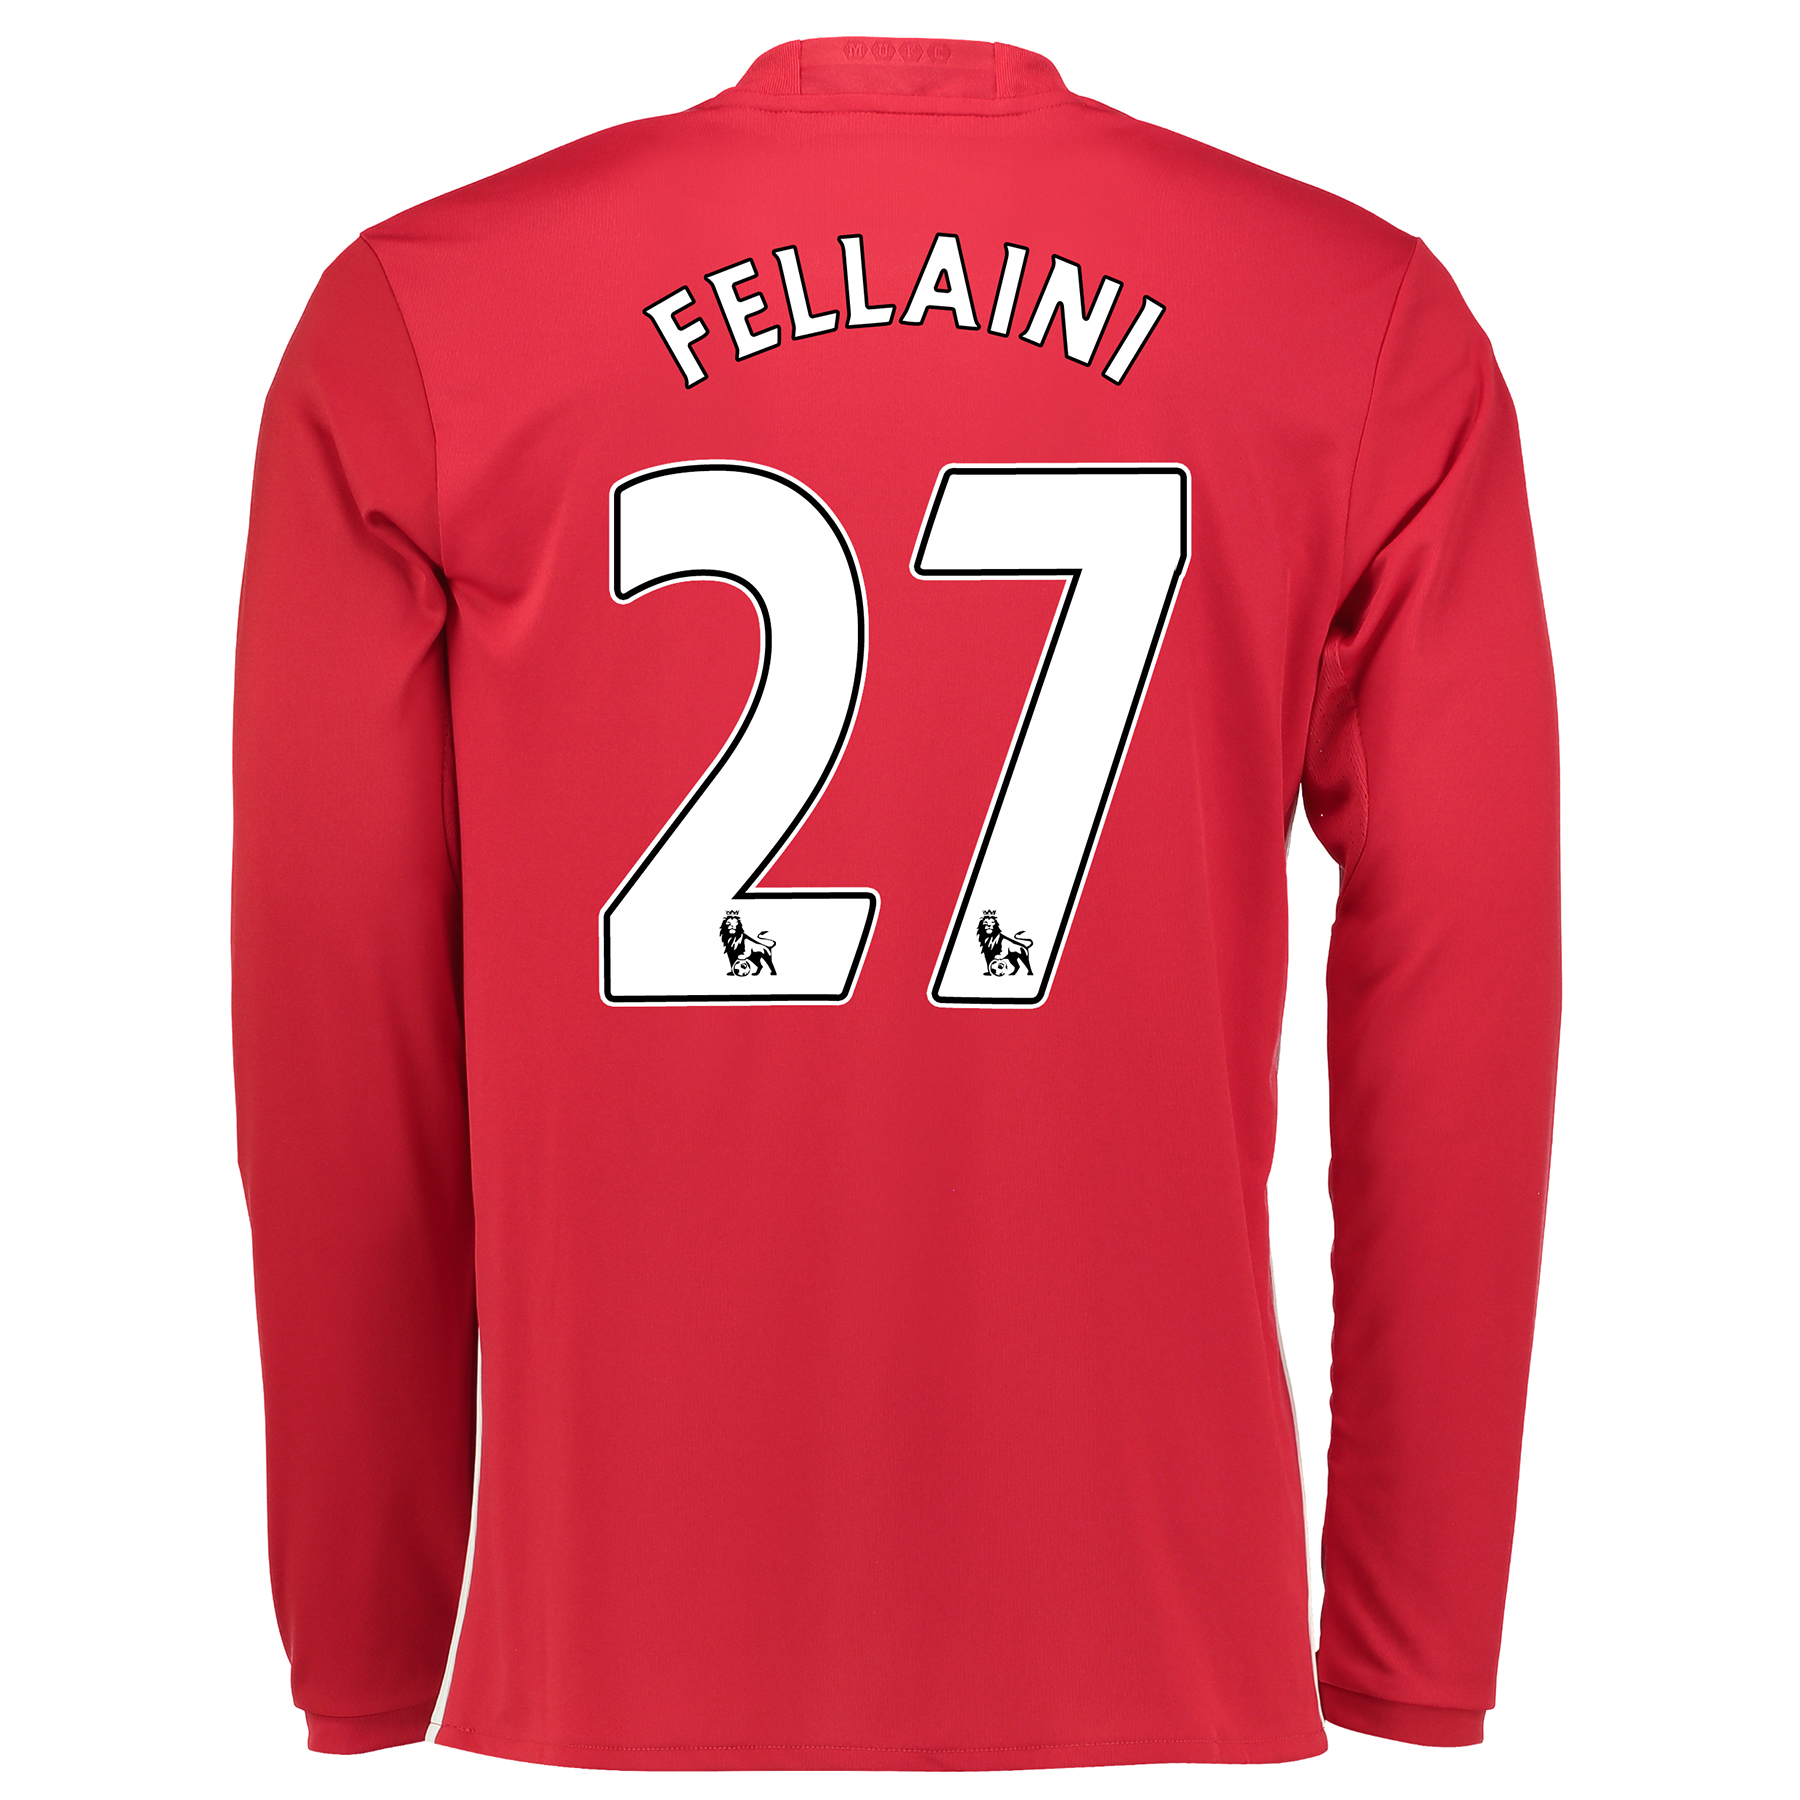 Manchester United Home Shirt 2016-17 - Long Sleeve with Fellaini 27 pr